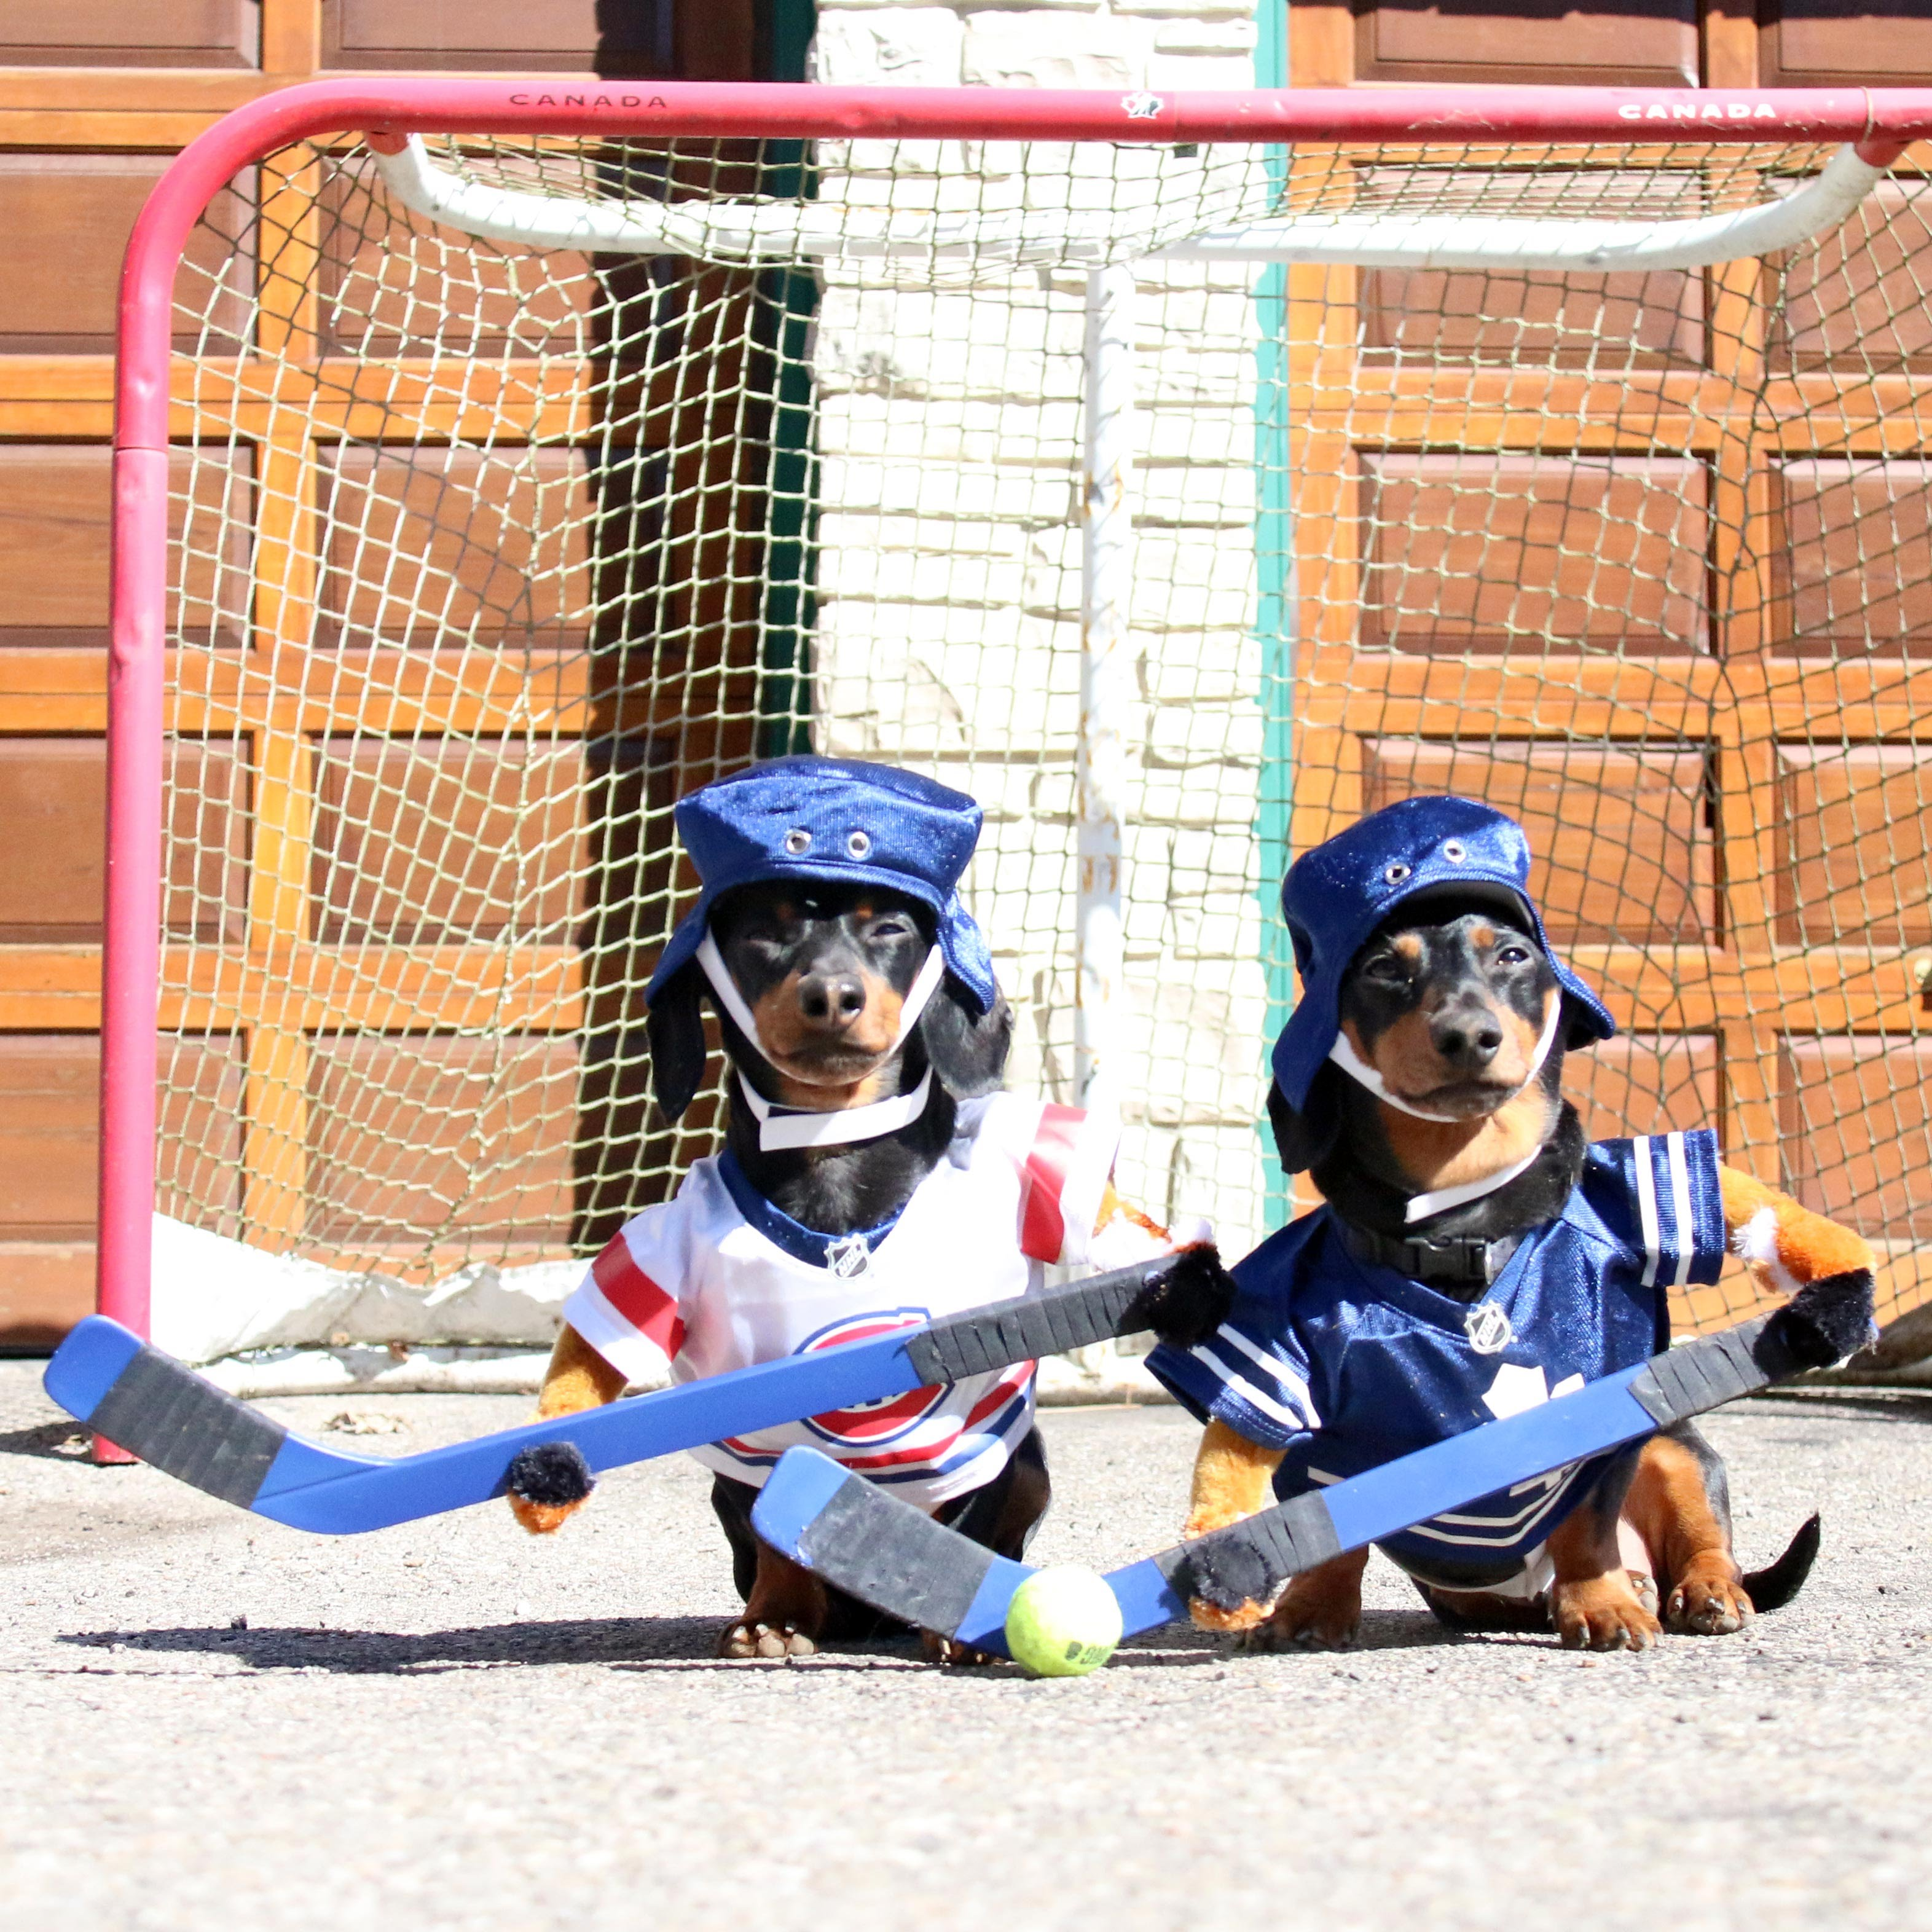 Crusoe plays hockey